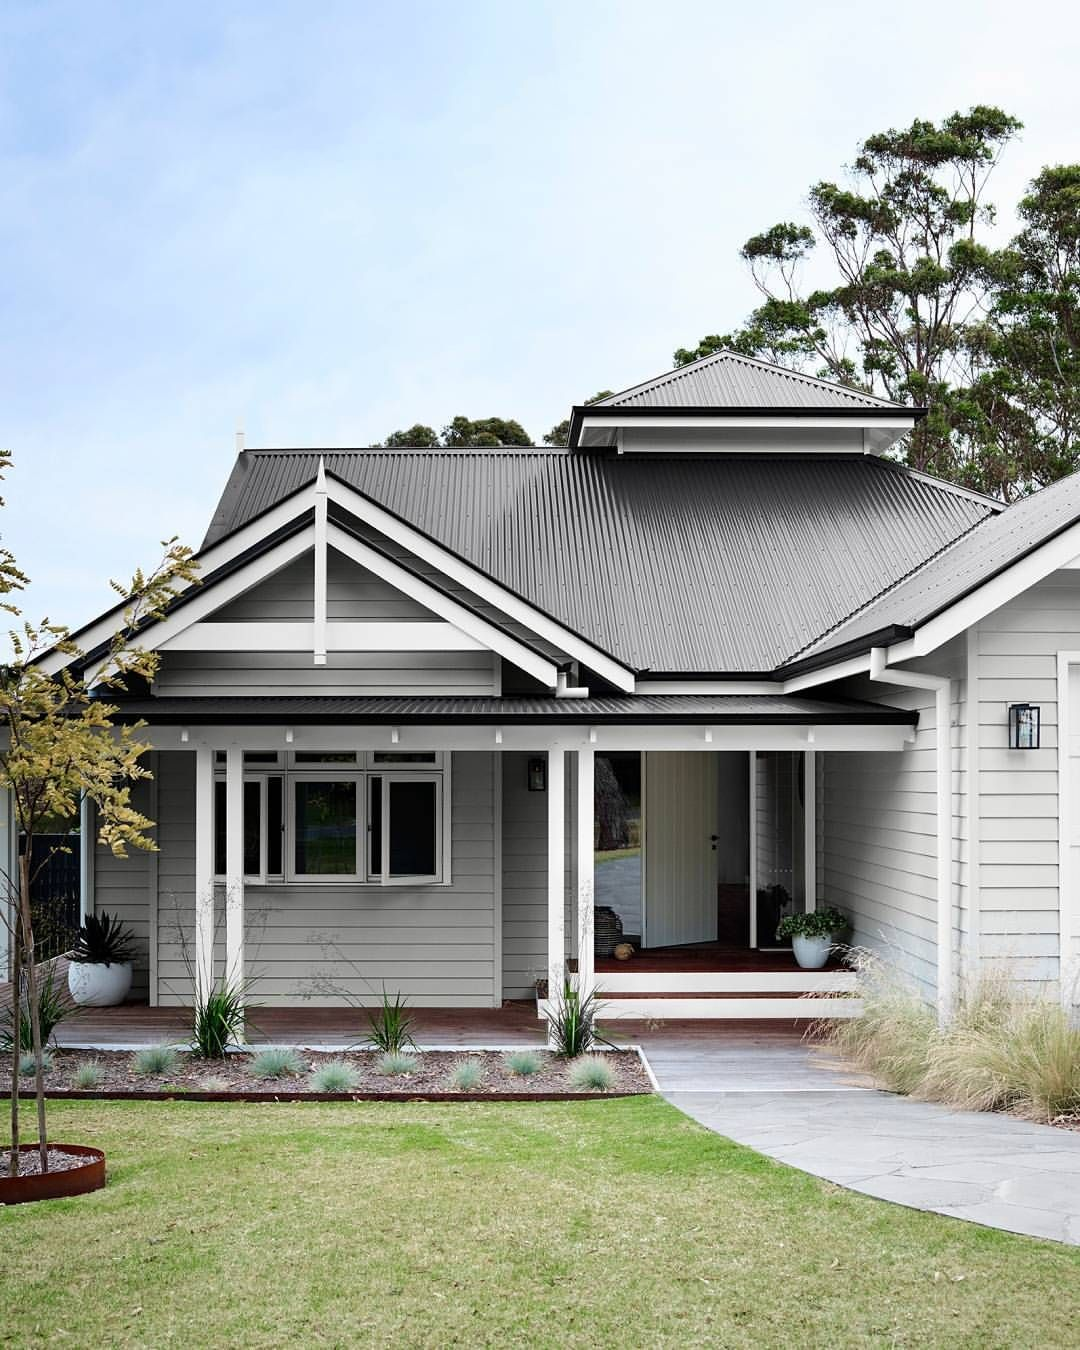 1 435 Likes 53 Comments Dulux Australia Duluxaus On Instagram For A Beautiful Timel House Paint Exterior Hamptons House Exterior Exterior House Colors